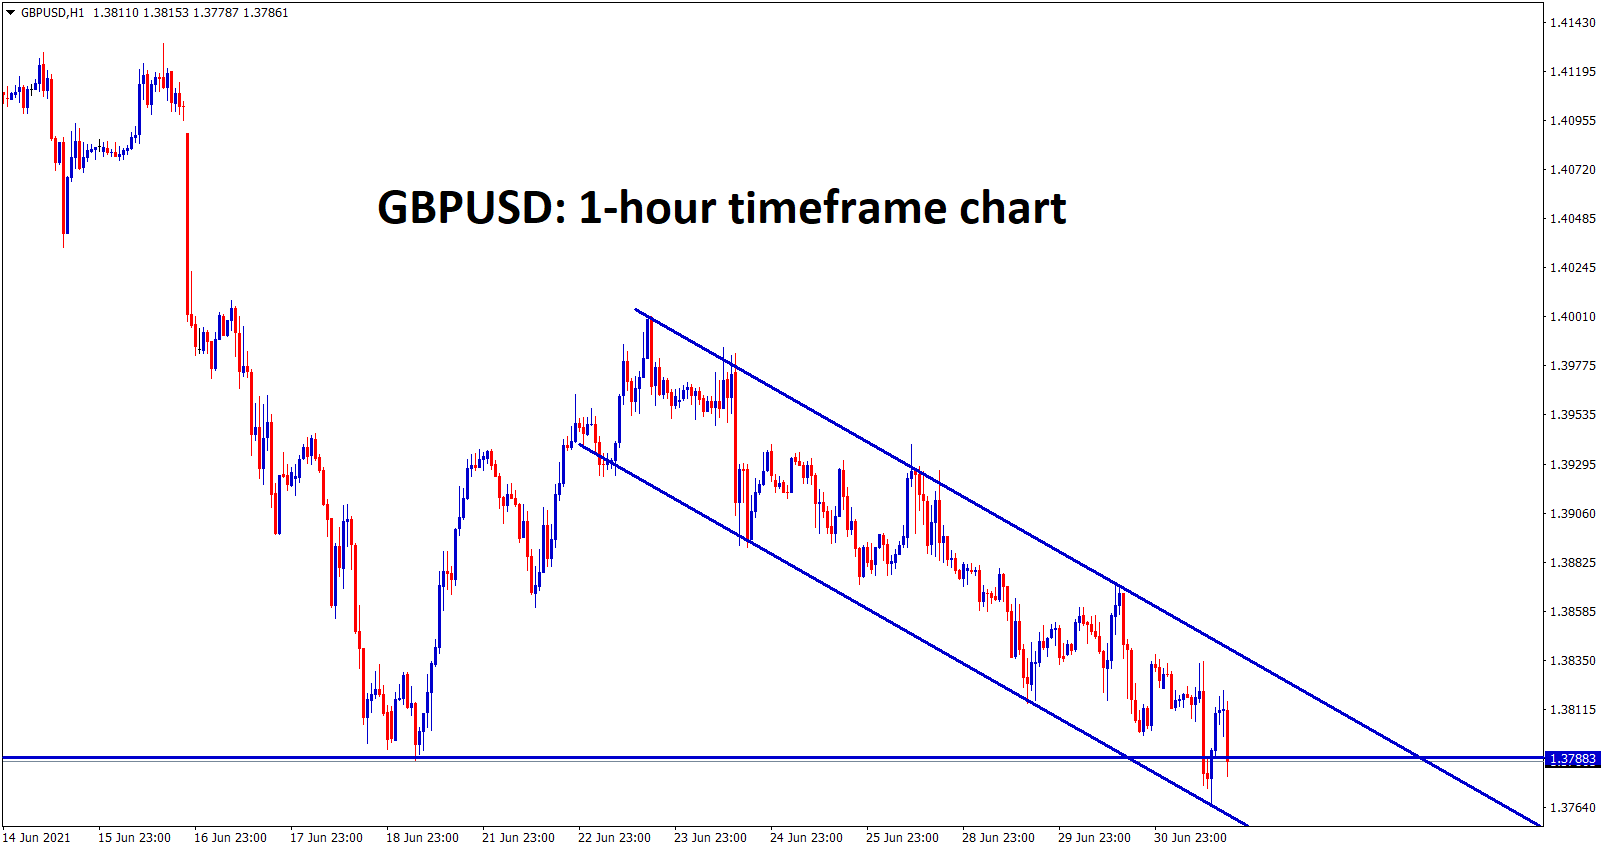 GBPUSD moving in a descending channel and it hits the recent support zone